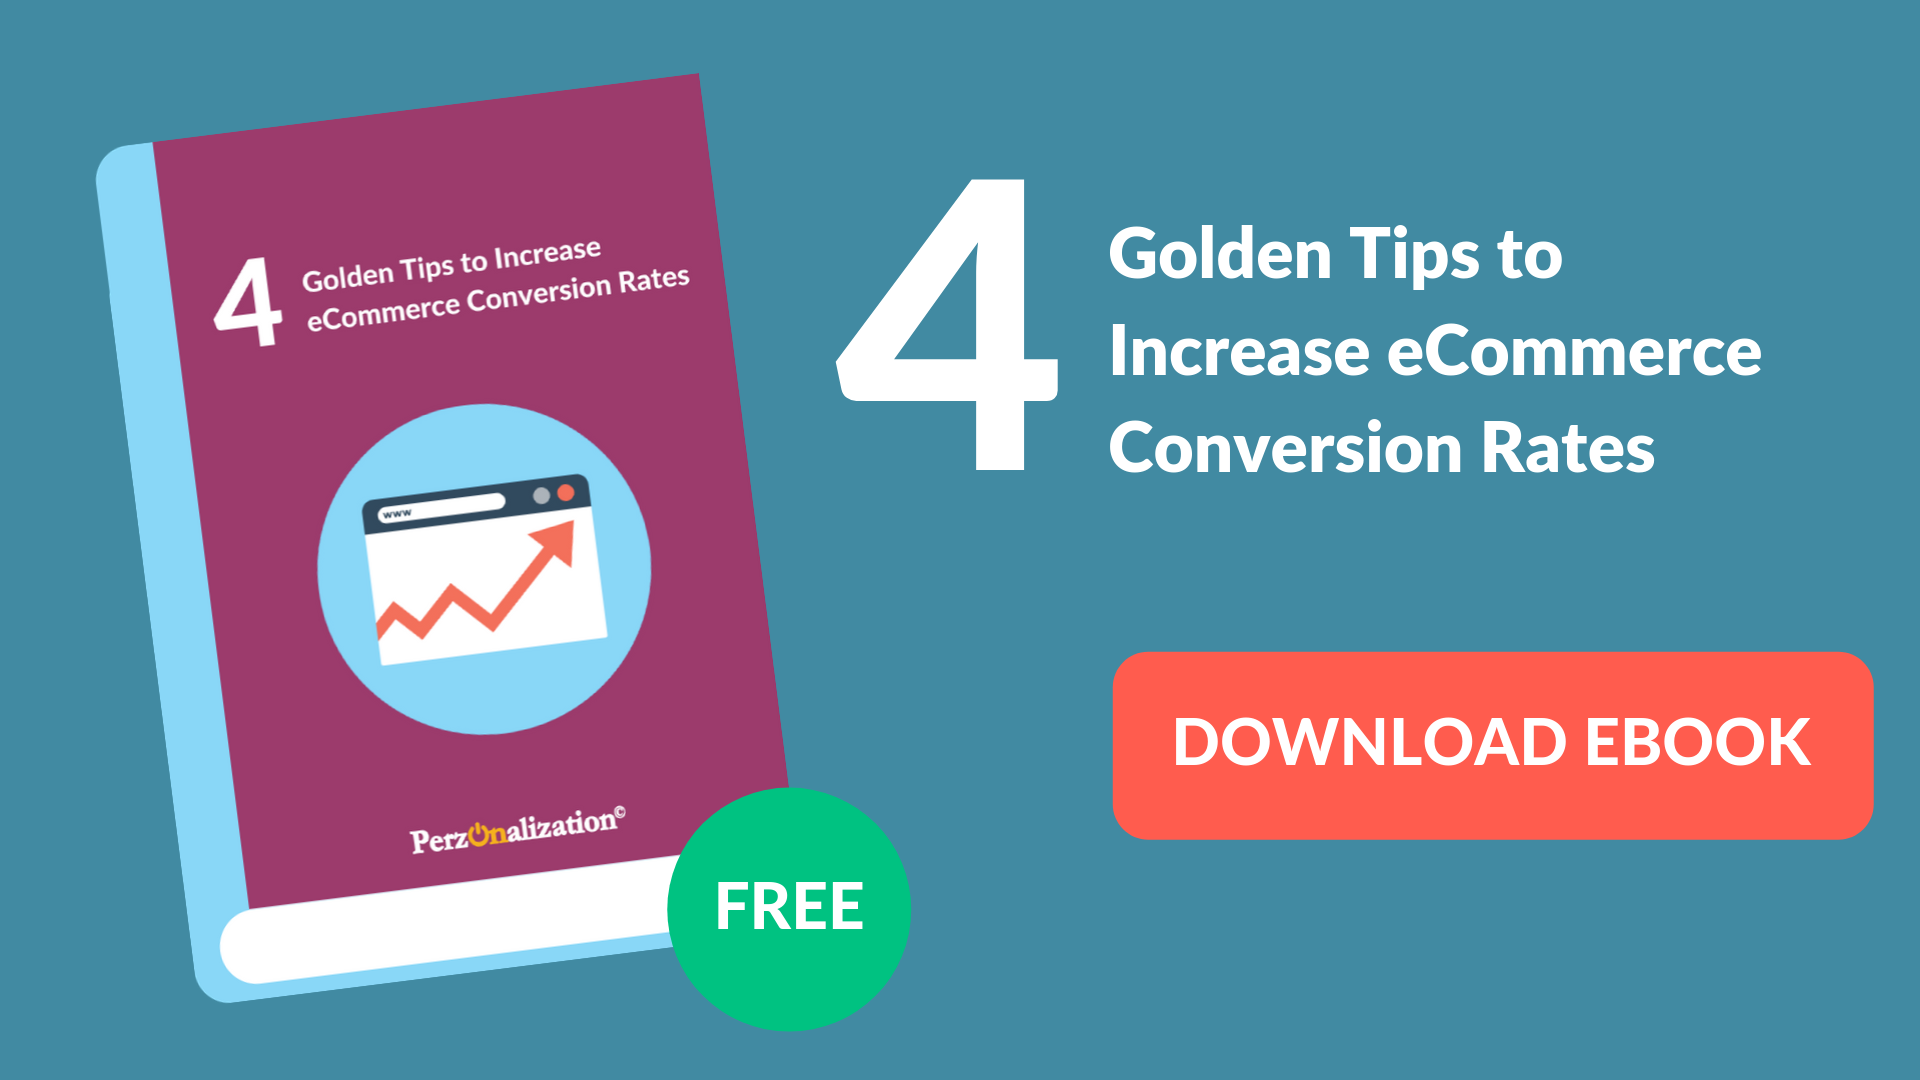 Download free eBook: Tips to increase eCommerce Conversion Rates